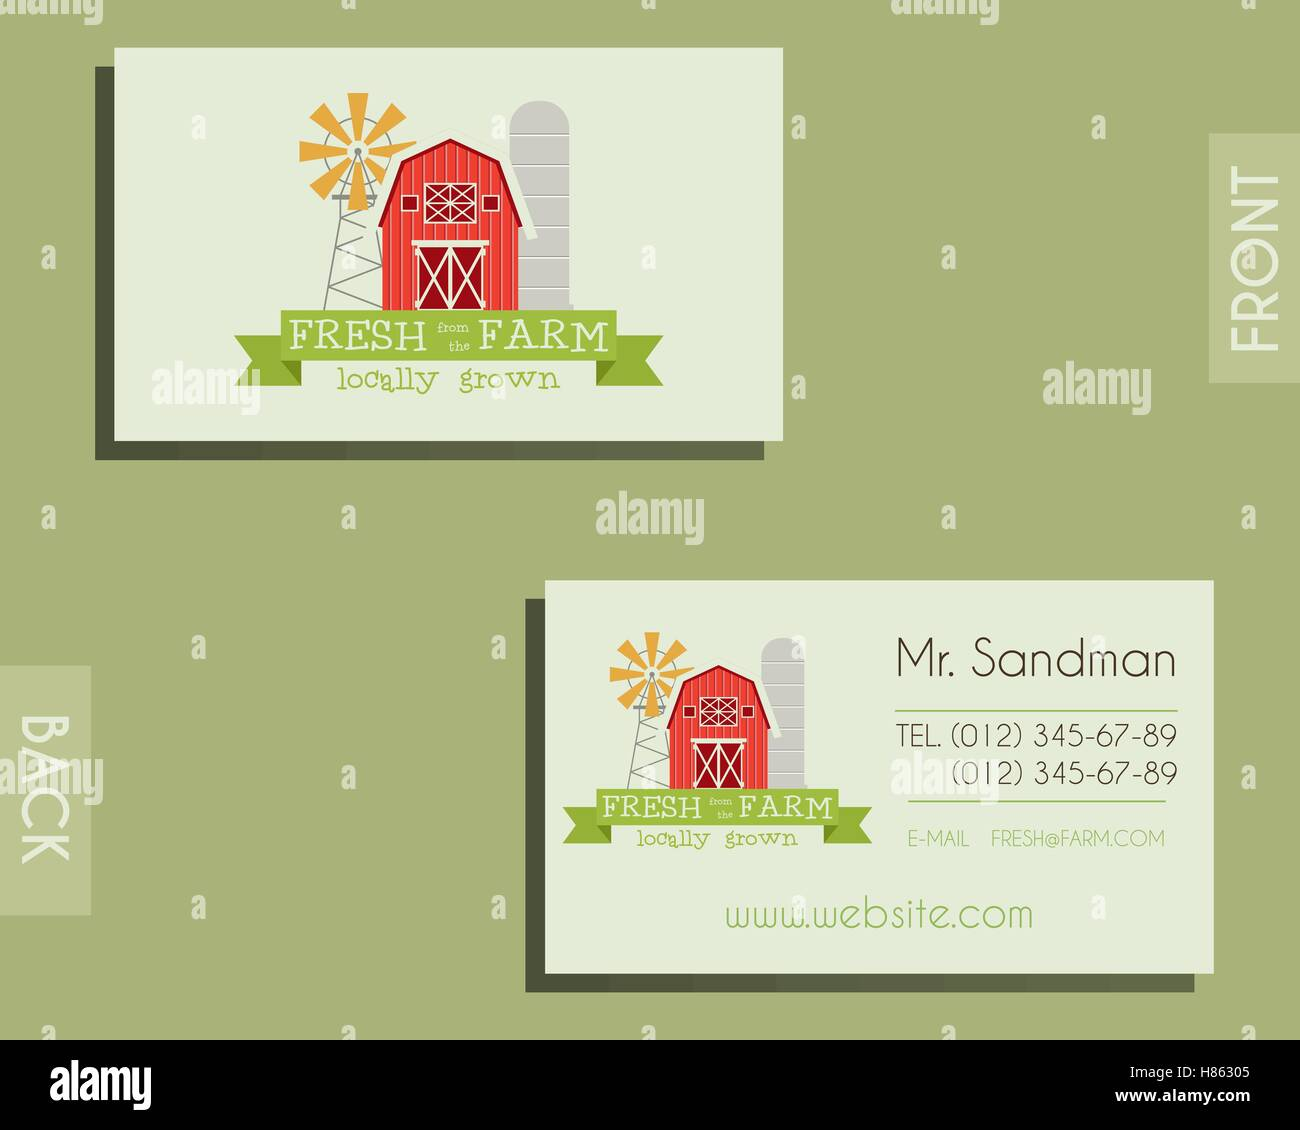 Eco organic visiting card template for natural shop farm products eco organic visiting card template for natural shop farm products and other bio organic business ecology theme eco design vector illustration colourmoves